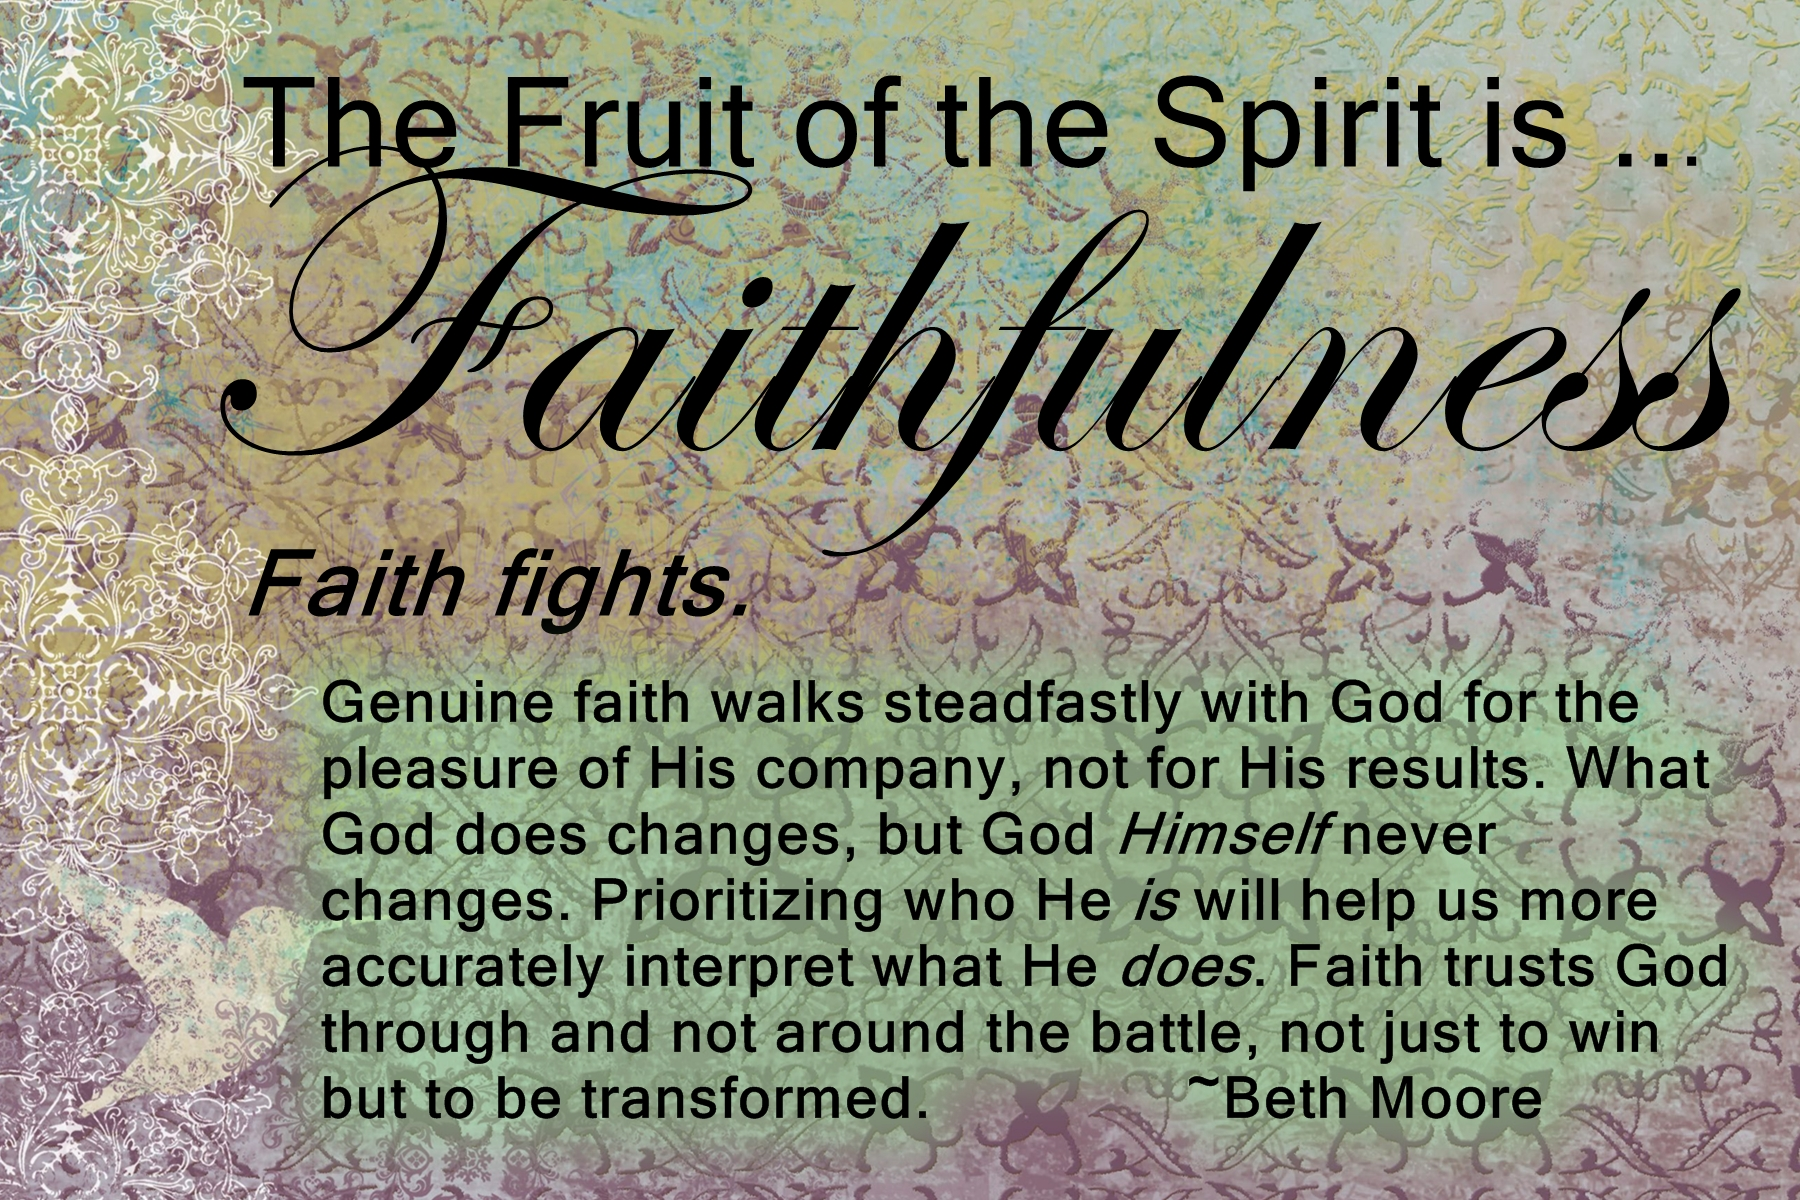 The Fruit of the Spirit is … Faithfulness | How's That Workin' for Ya?